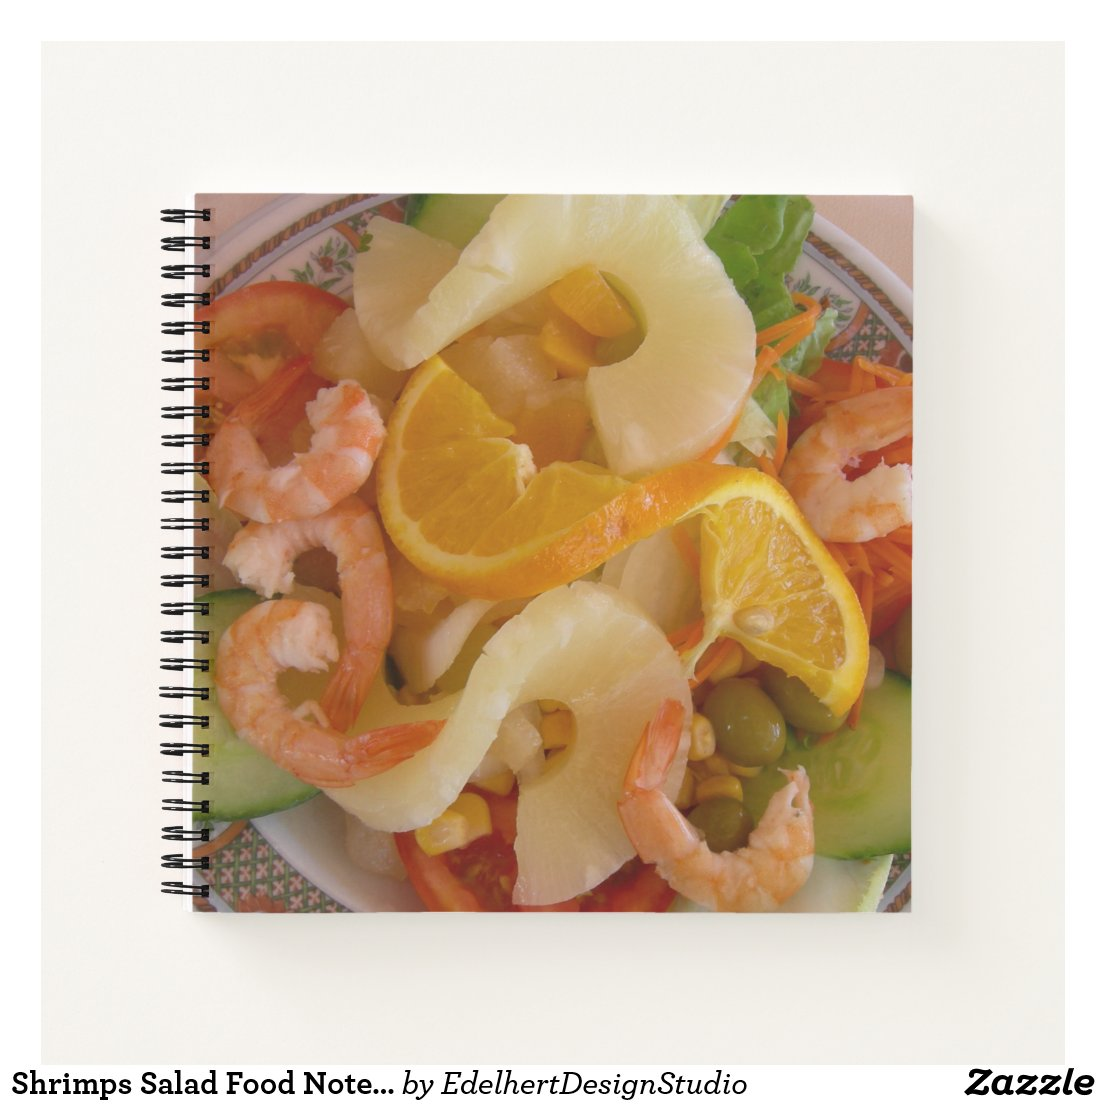 Shrimps Salad Food Notebook